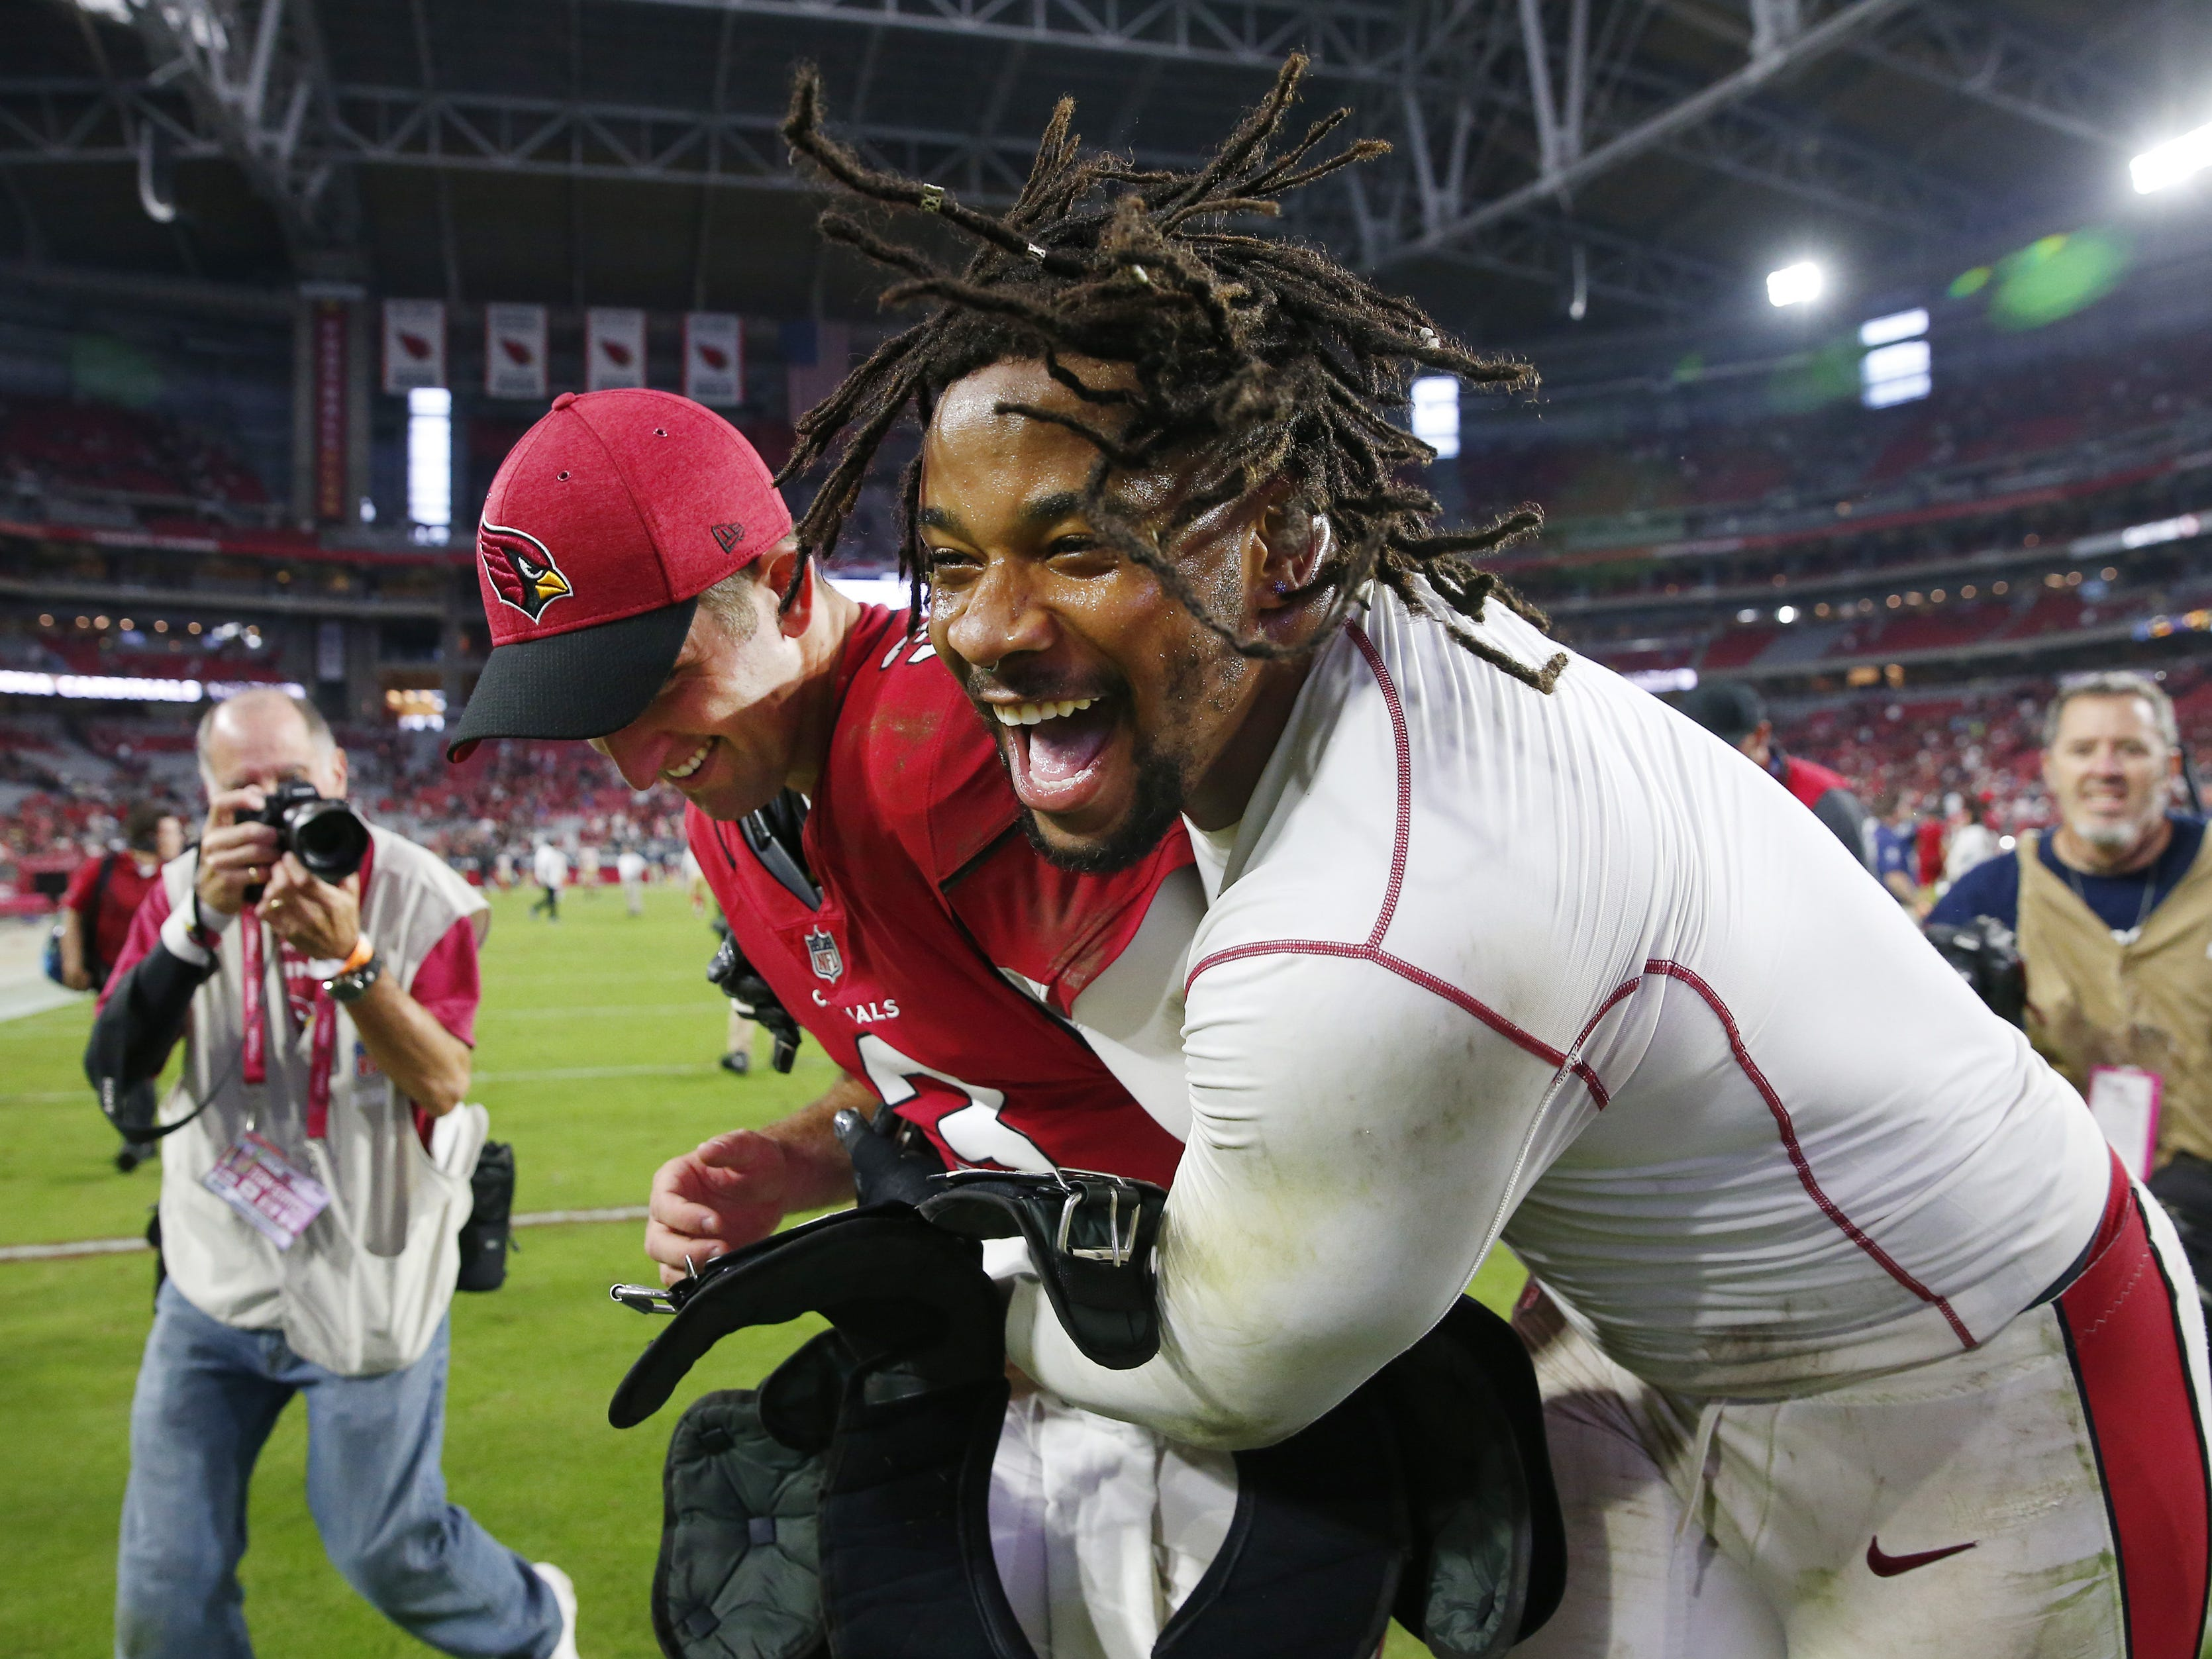 Arizona Cardinals quarterback Josh Rosen (left) is hugged by defensive tackle Robert Nkemdiche (90) after an 18-15 come-from-behind win against the San Francisco 49ers on Oct. 28 at State Farm Stadium.